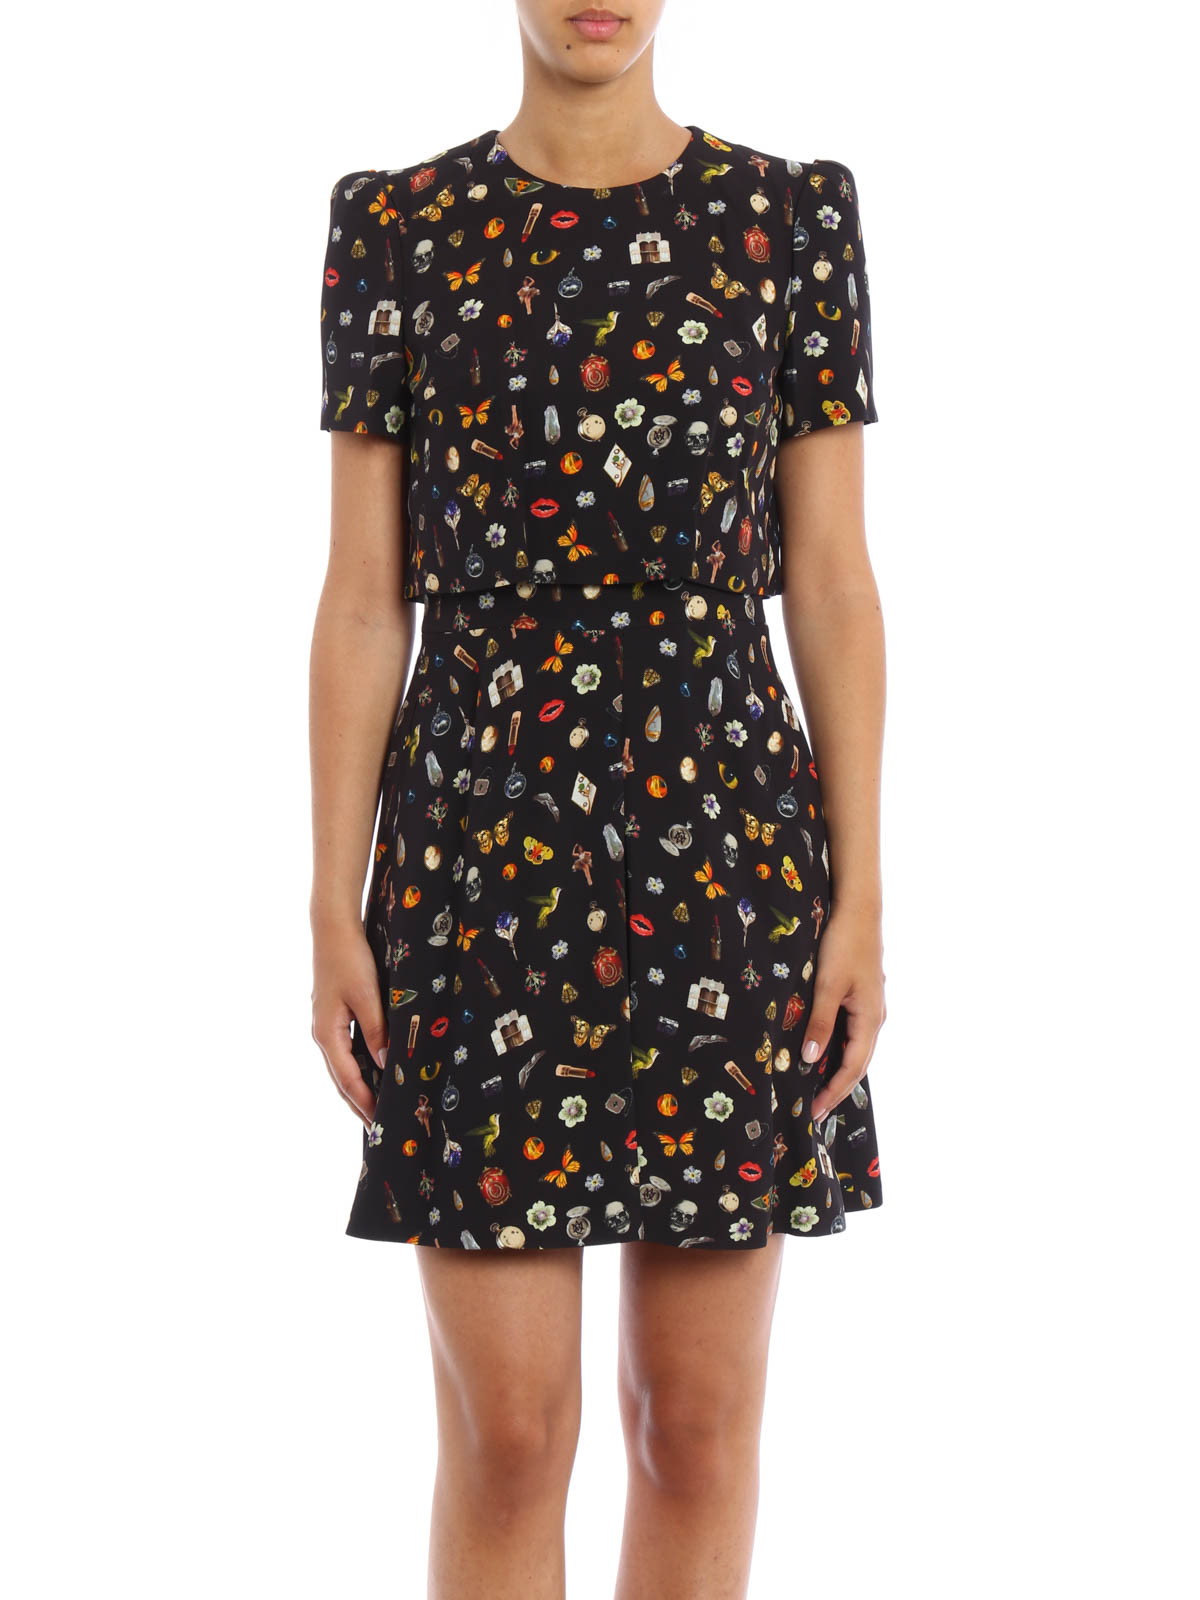 Obsession print dress by Alexander Mcqueen - cocktail ...